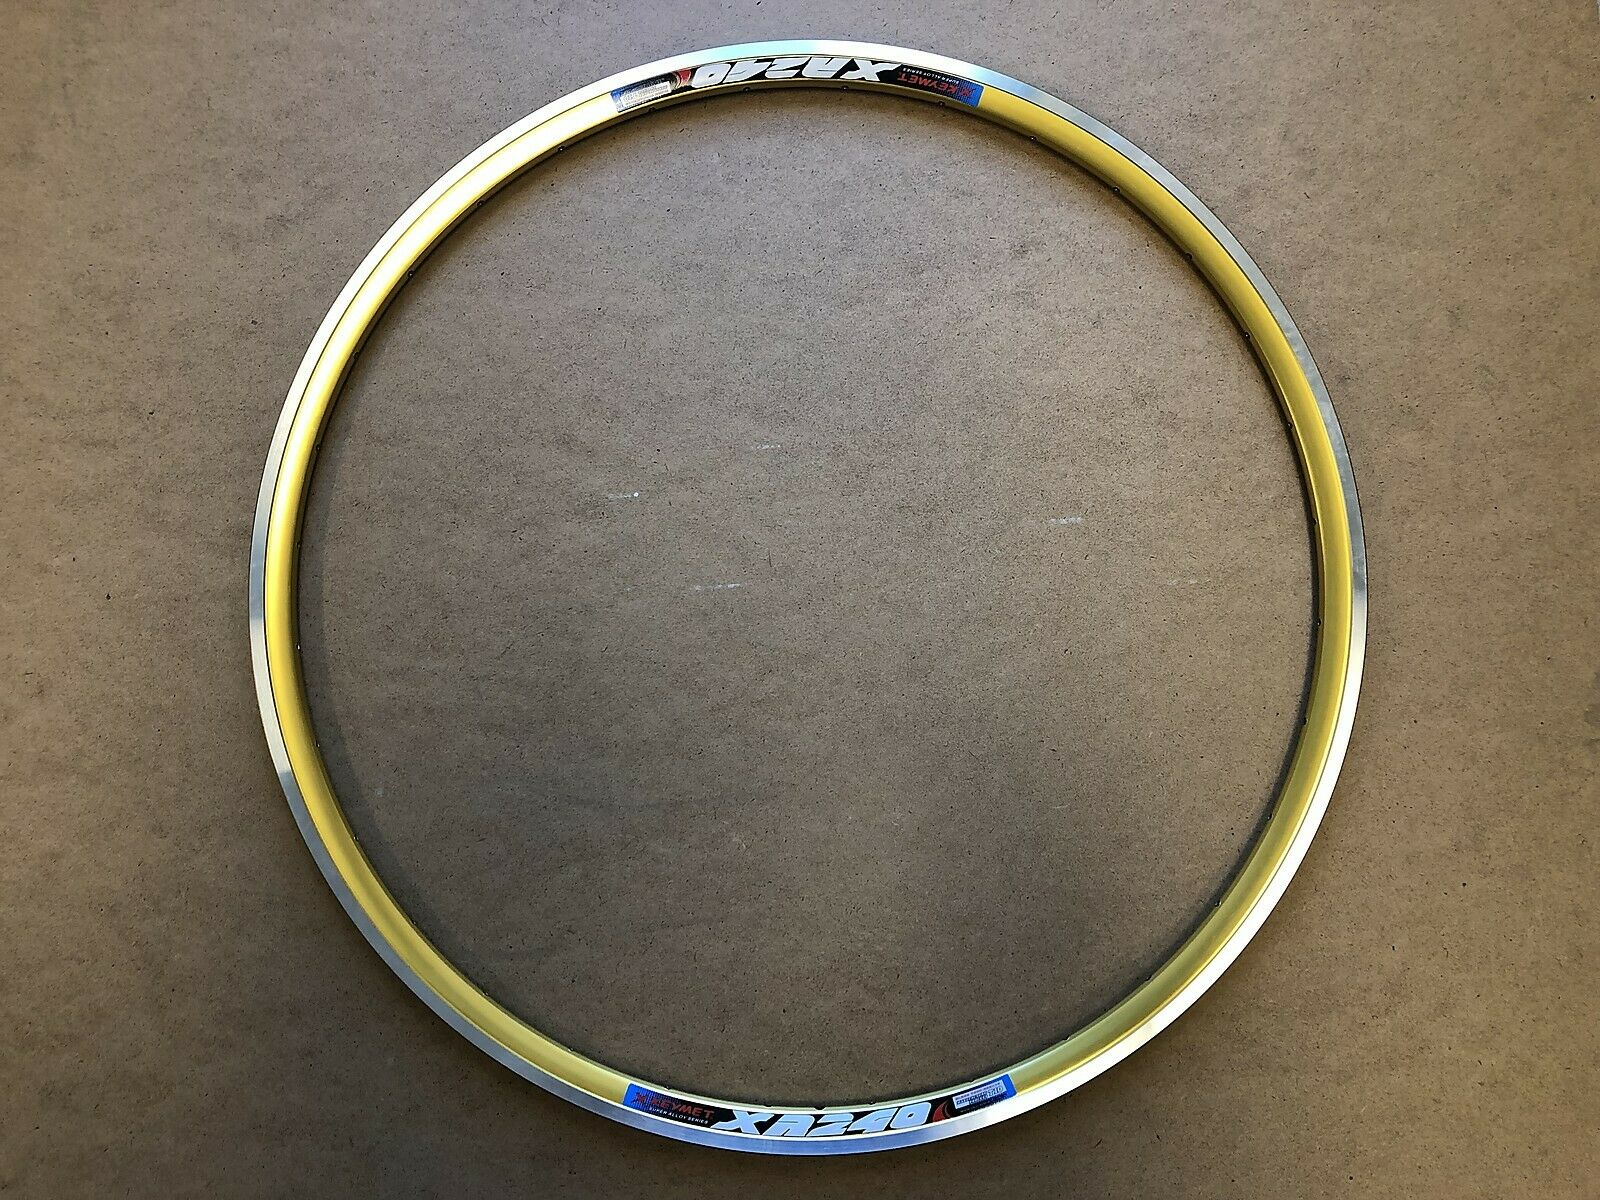 New Kinlin Rims XR-240 700C (622x13.7) 14G 32H PV  CSW Anodized gold  the best after-sale service